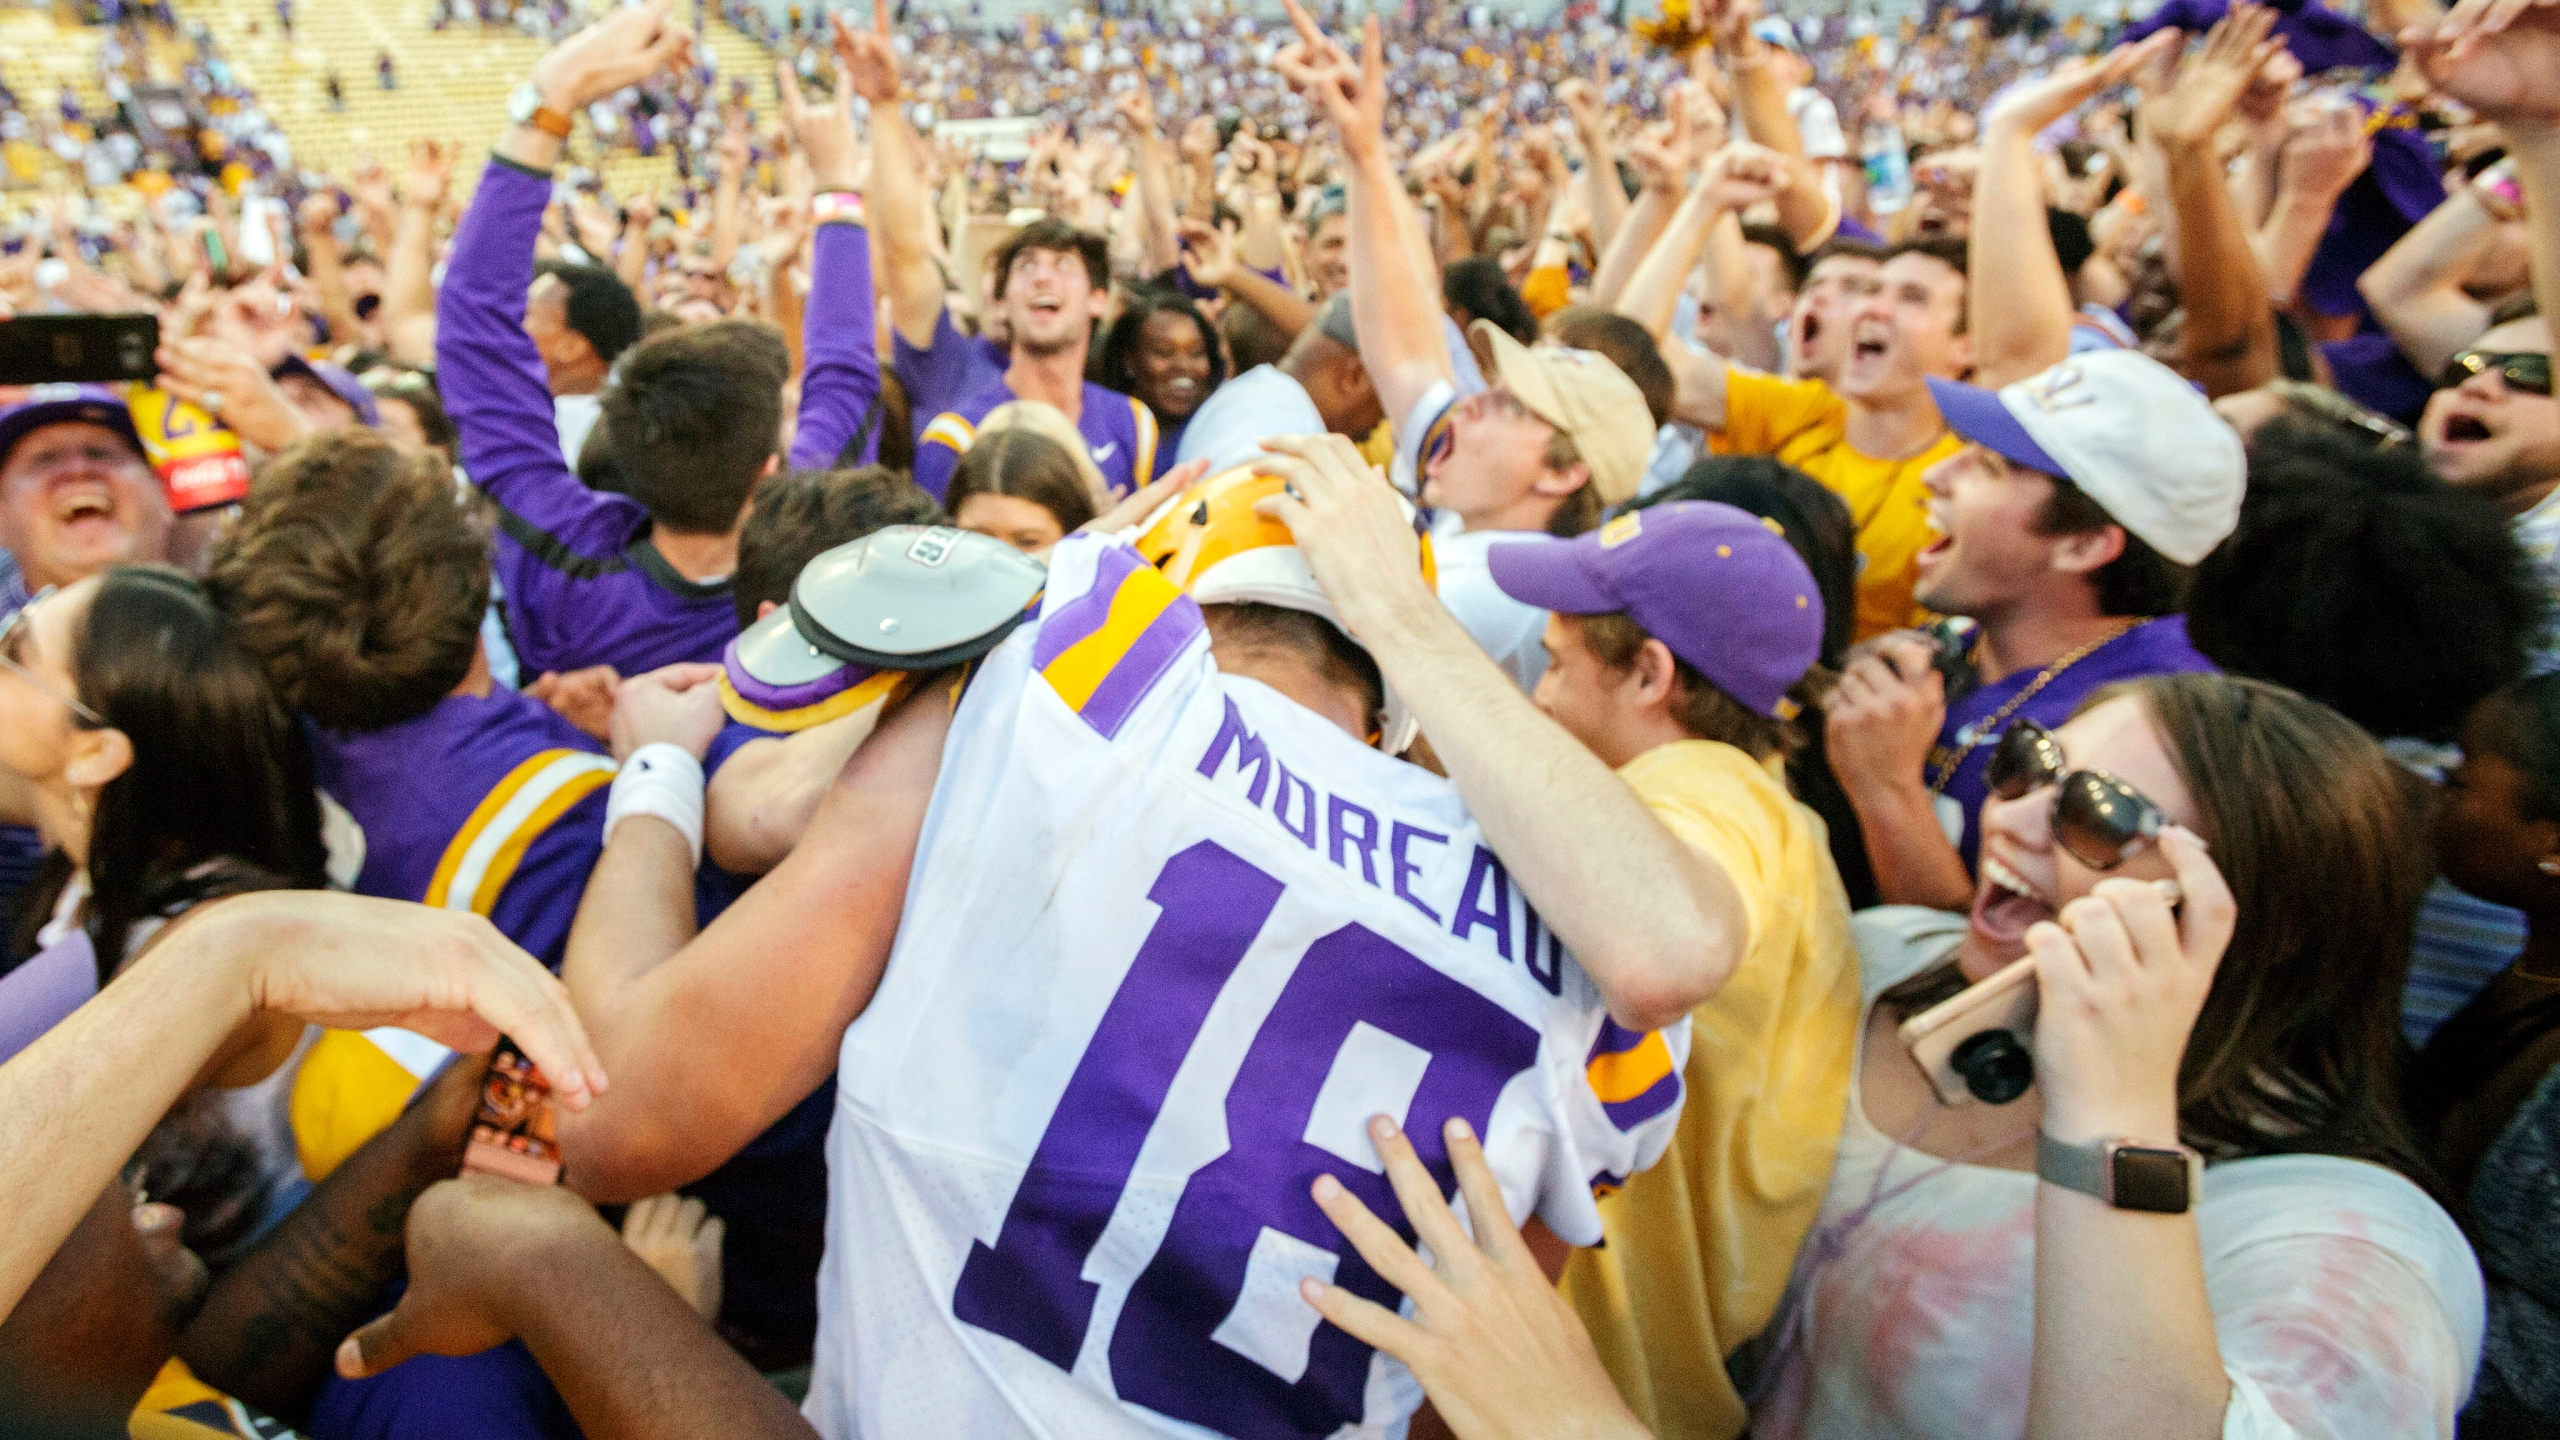 SEC fines LSU $100,000 for fans on field after Georgia win